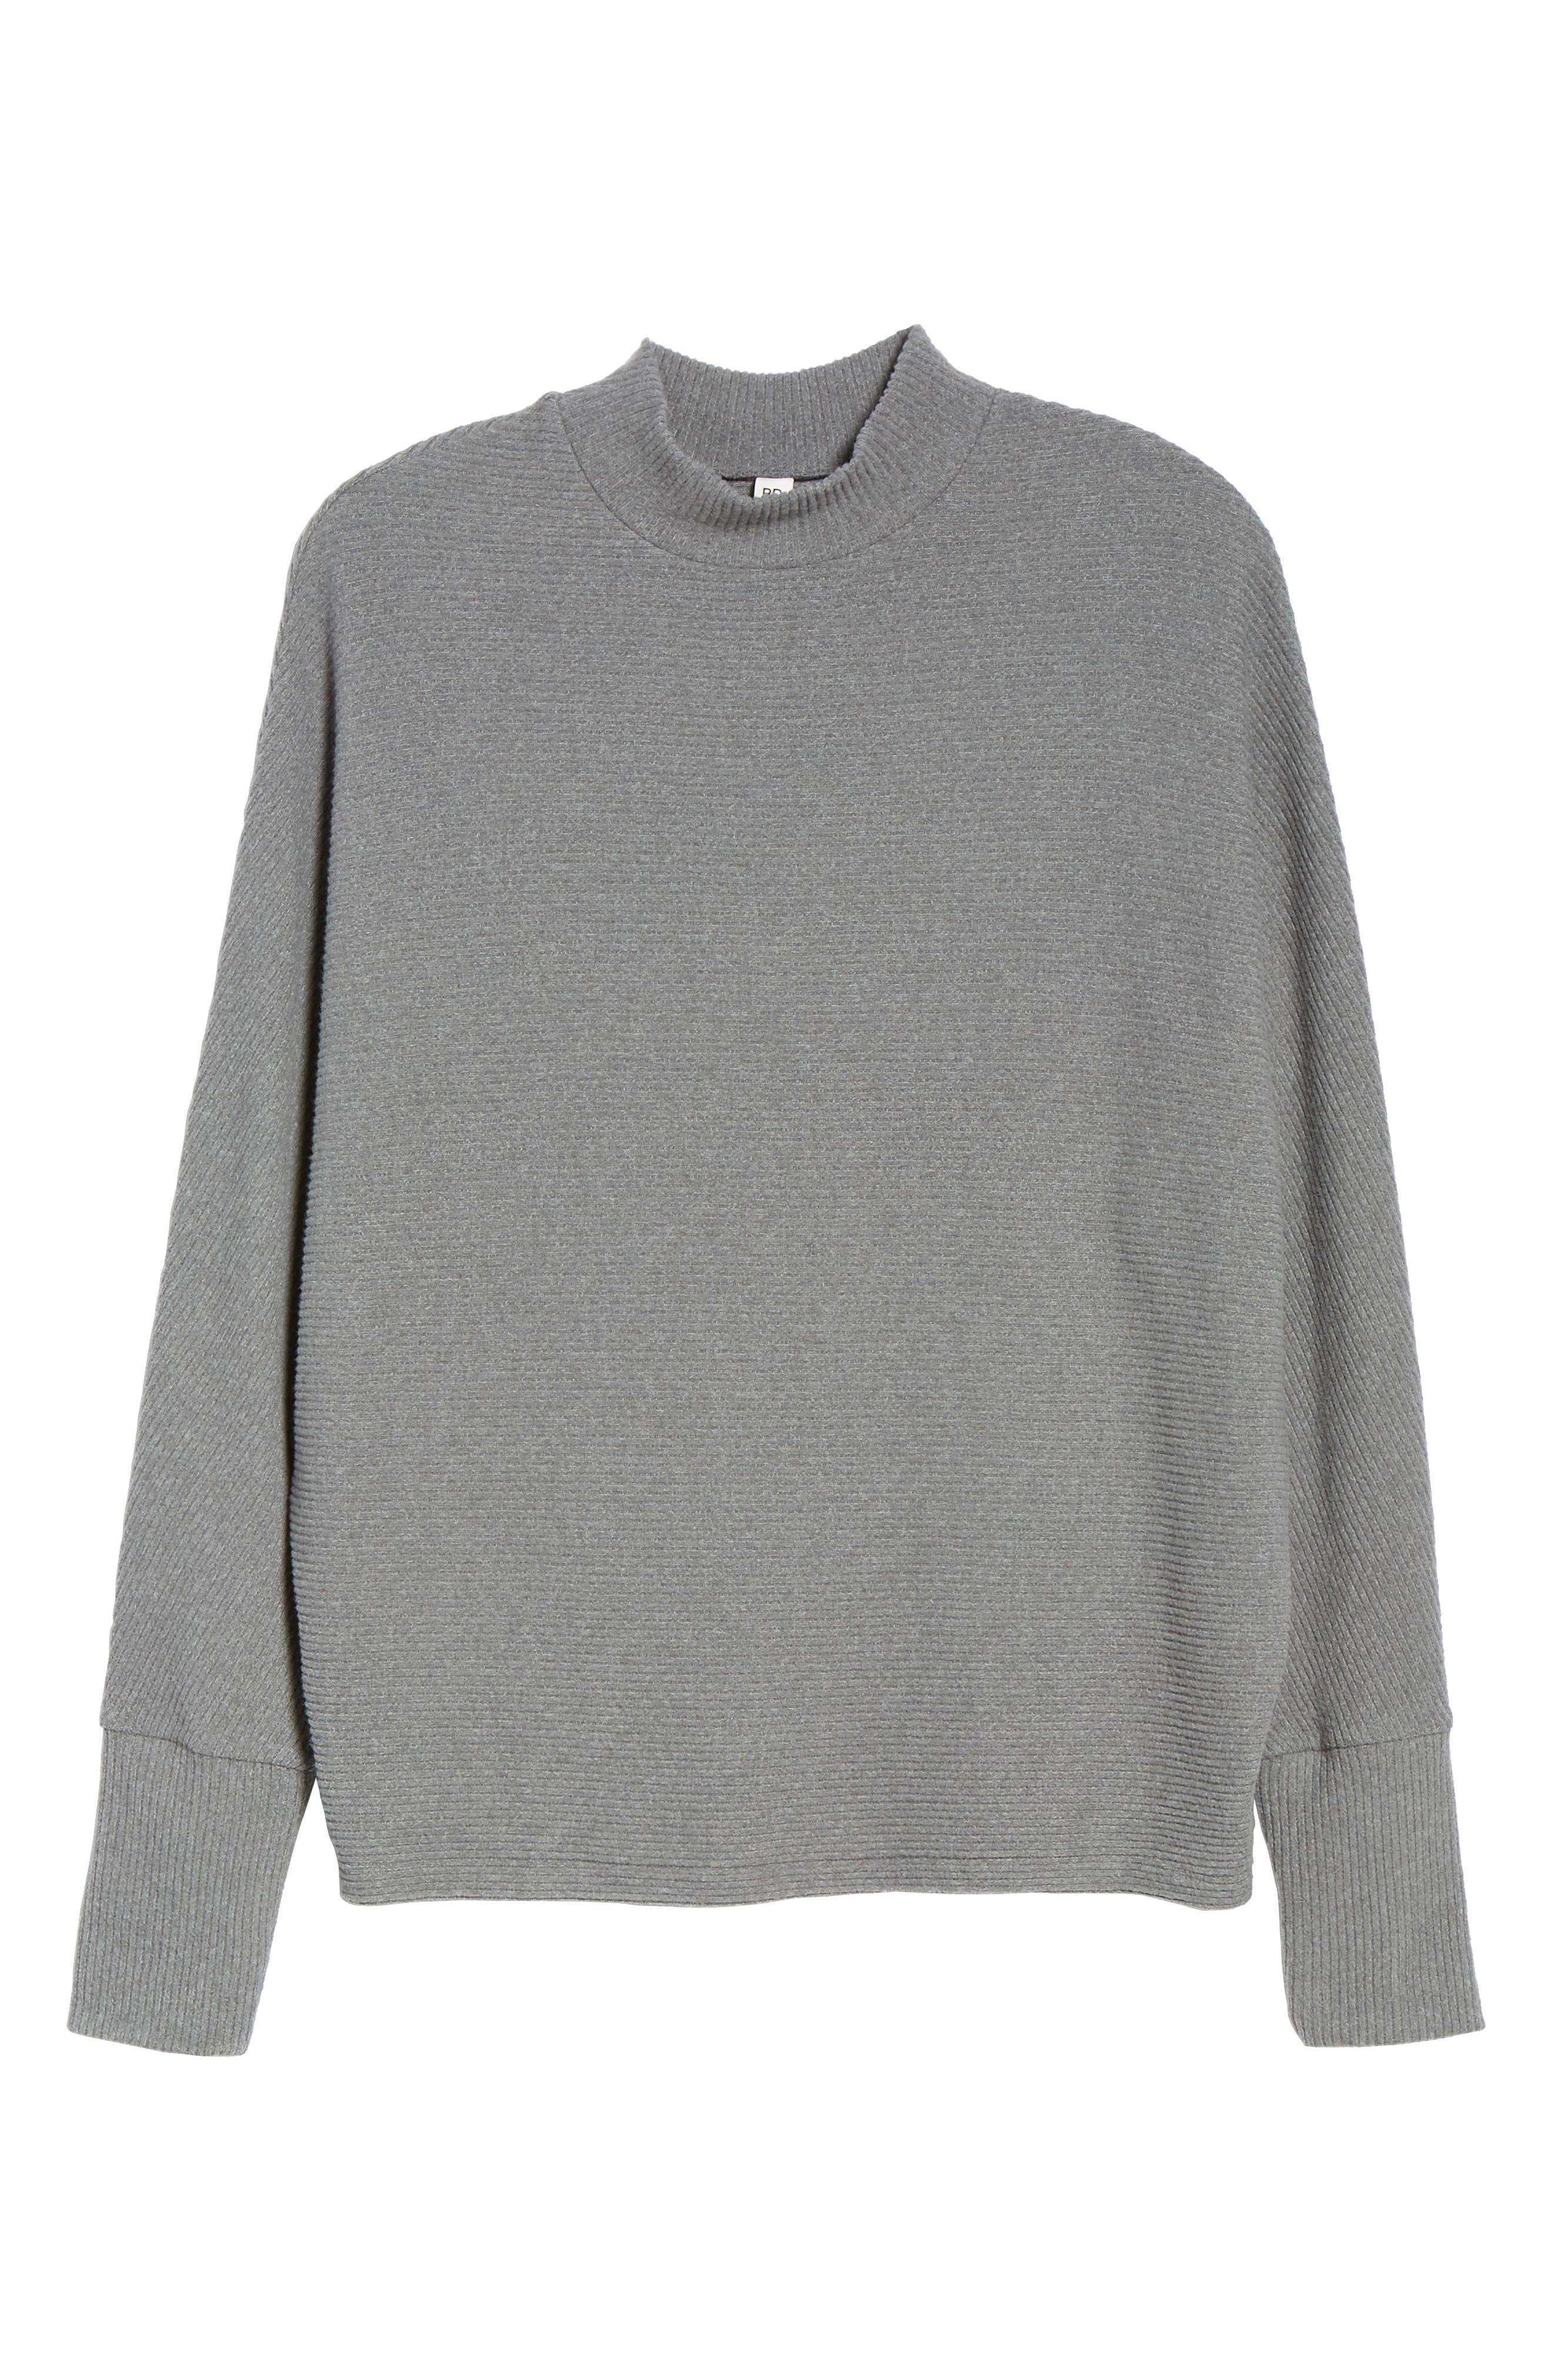 Dolman Sleeve Ribbed Top,                             Alternate thumbnail 6, color,                             GREY CLOUDY HEATHER